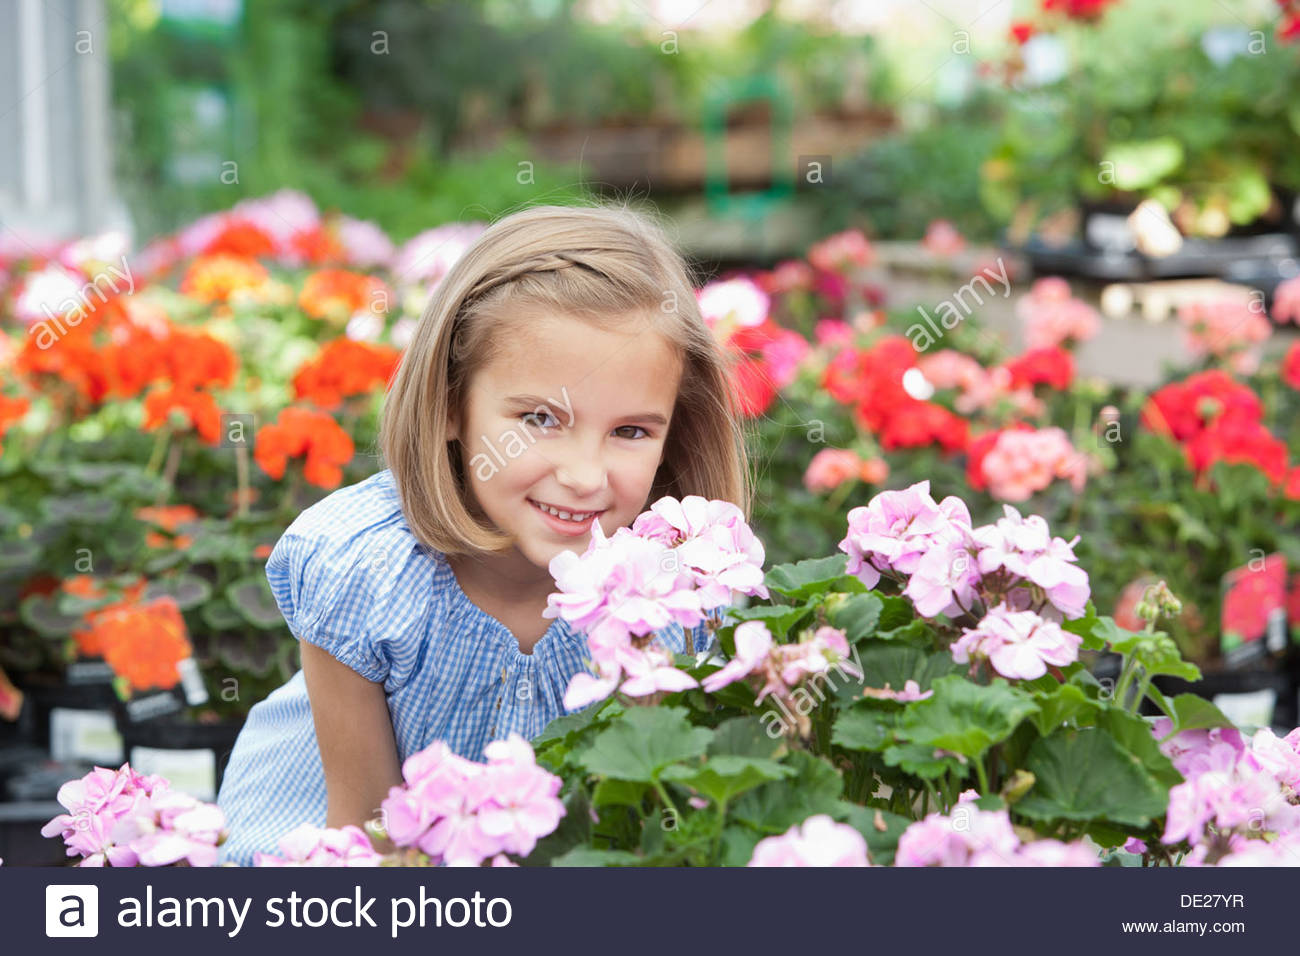 Girl smelling flowers at nursery - Stock Image